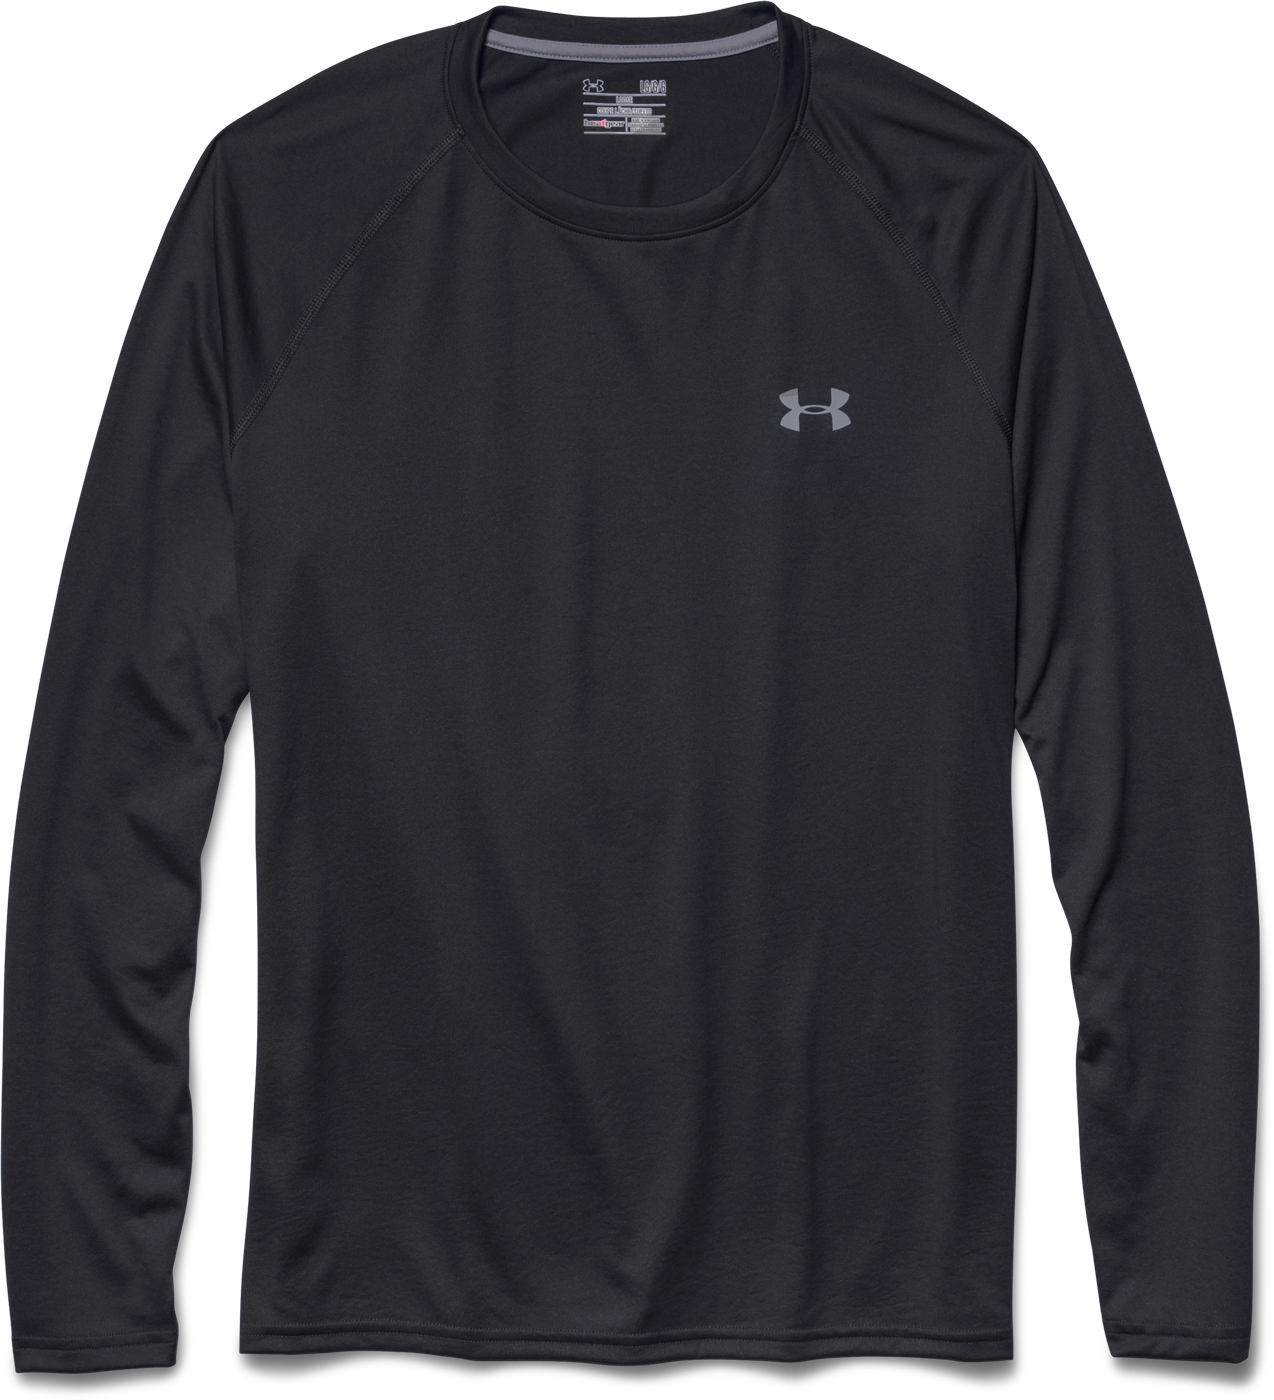 Under armour men 39 s ua tech longsleeve shirt for Under armour heatgear white shirt